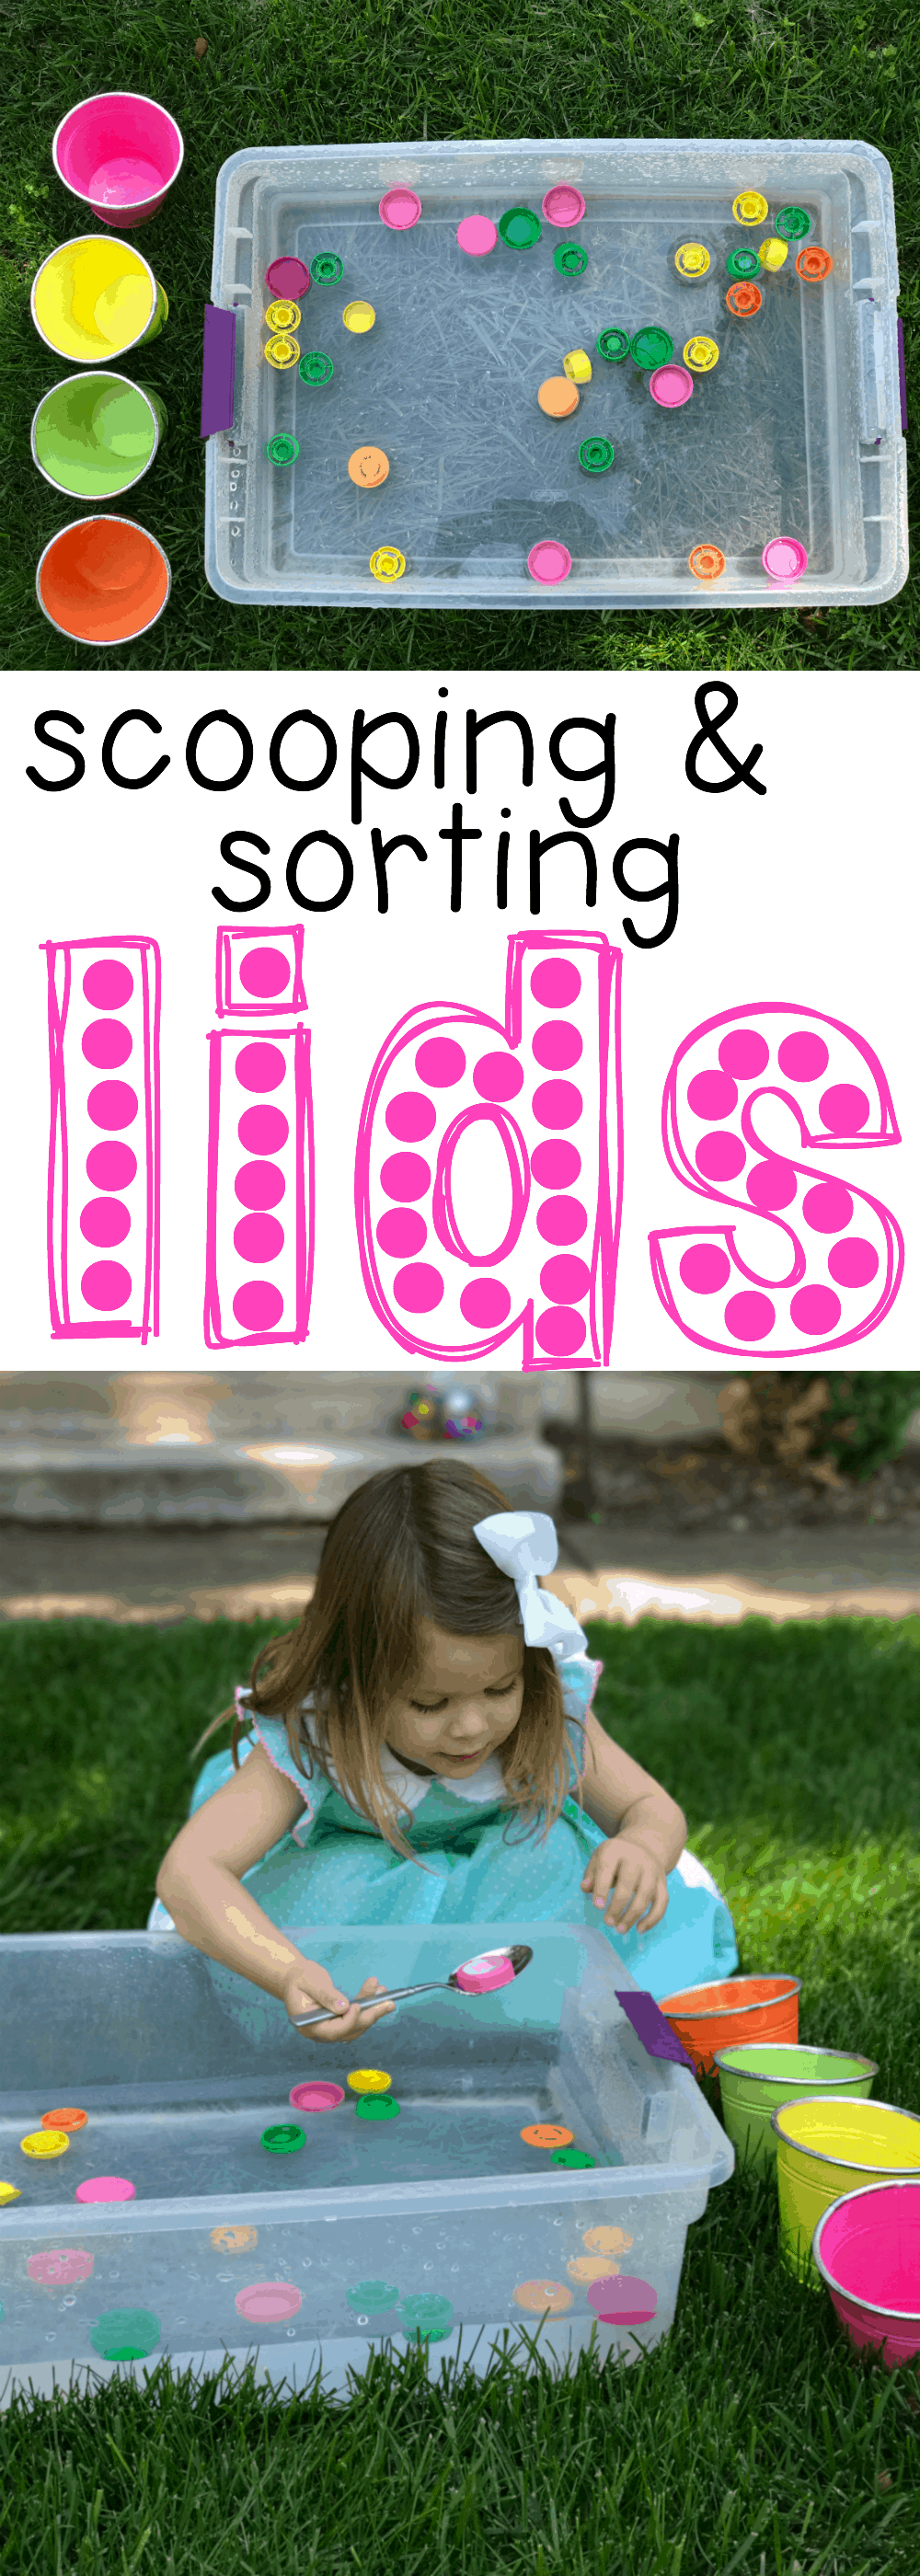 Scooping and Sorting Lids for Toddlers - I Can Teach My Child!